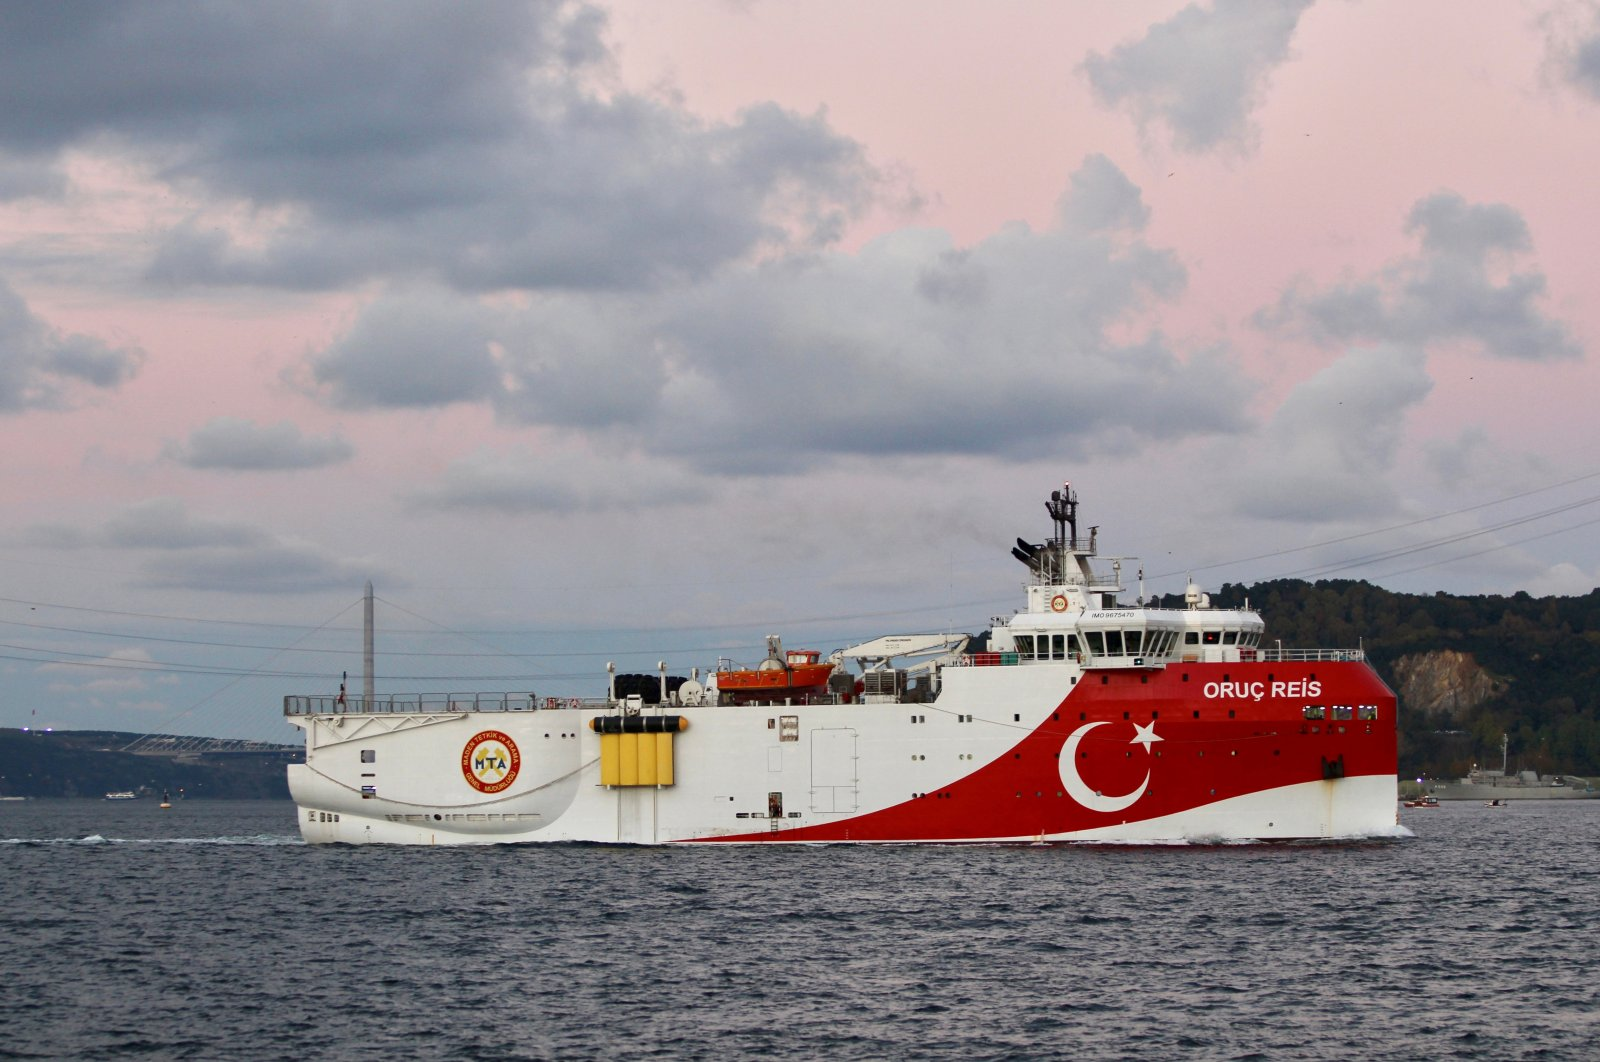 The Turkish seismic research vessel Oruç Reis passes through the Bosporus in Istanbul, Turkey, Nov. 12, 2018. (REUTERS Photo)